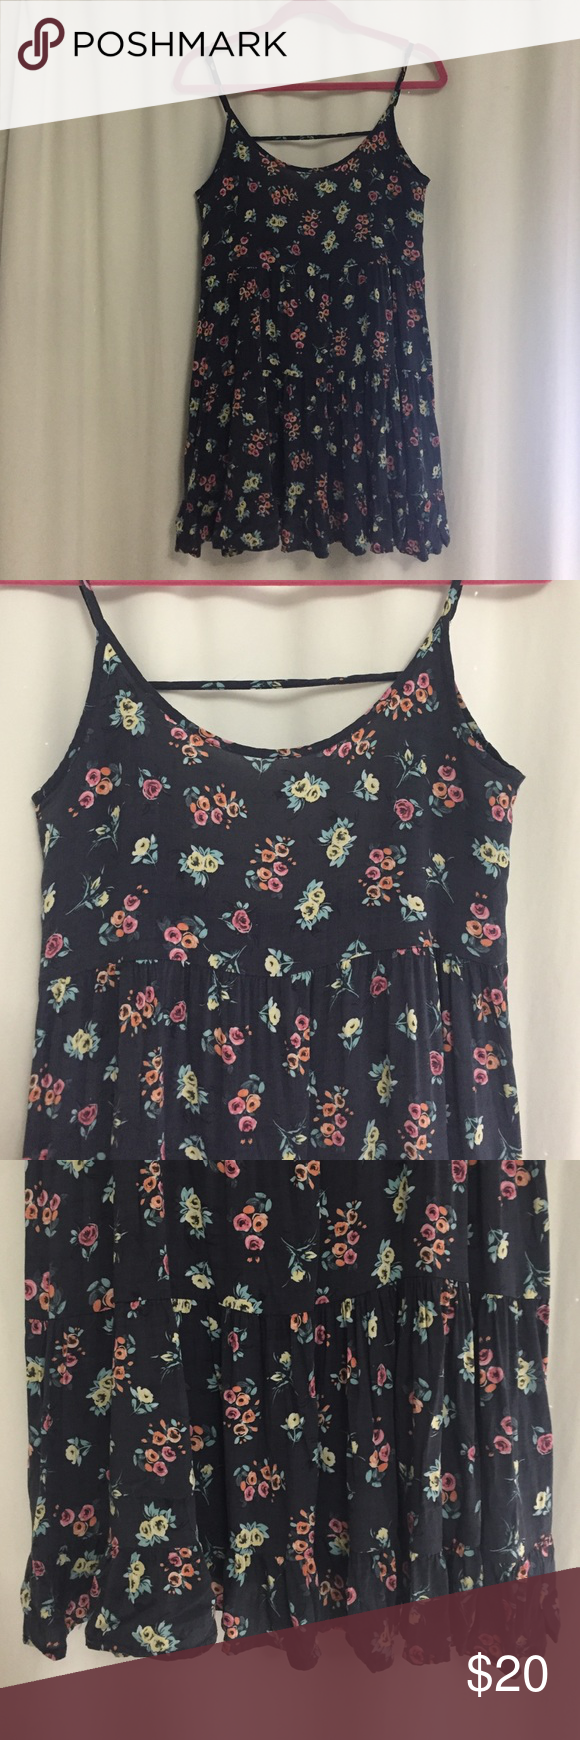 Brandy Melville floral dress Cutout back, adjustable spaghetti straps, tiered, Rose print sundress, size Small Brandy Melville Dresses Mini